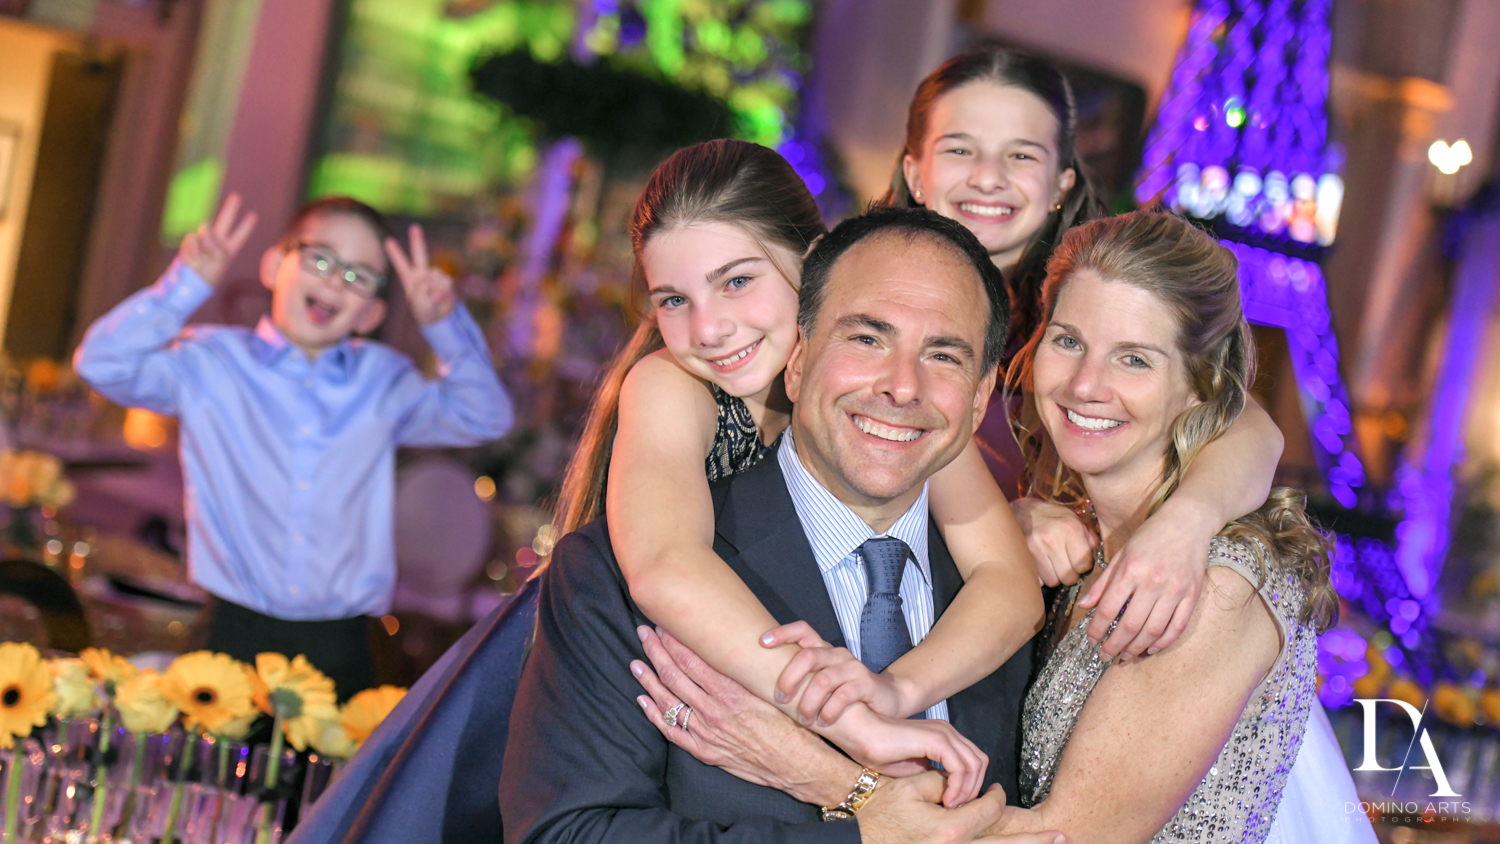 fun family at Madeline in Paris theme Bat Mitzvah at Boca Raton Resort and Club by Domino Arts Photography